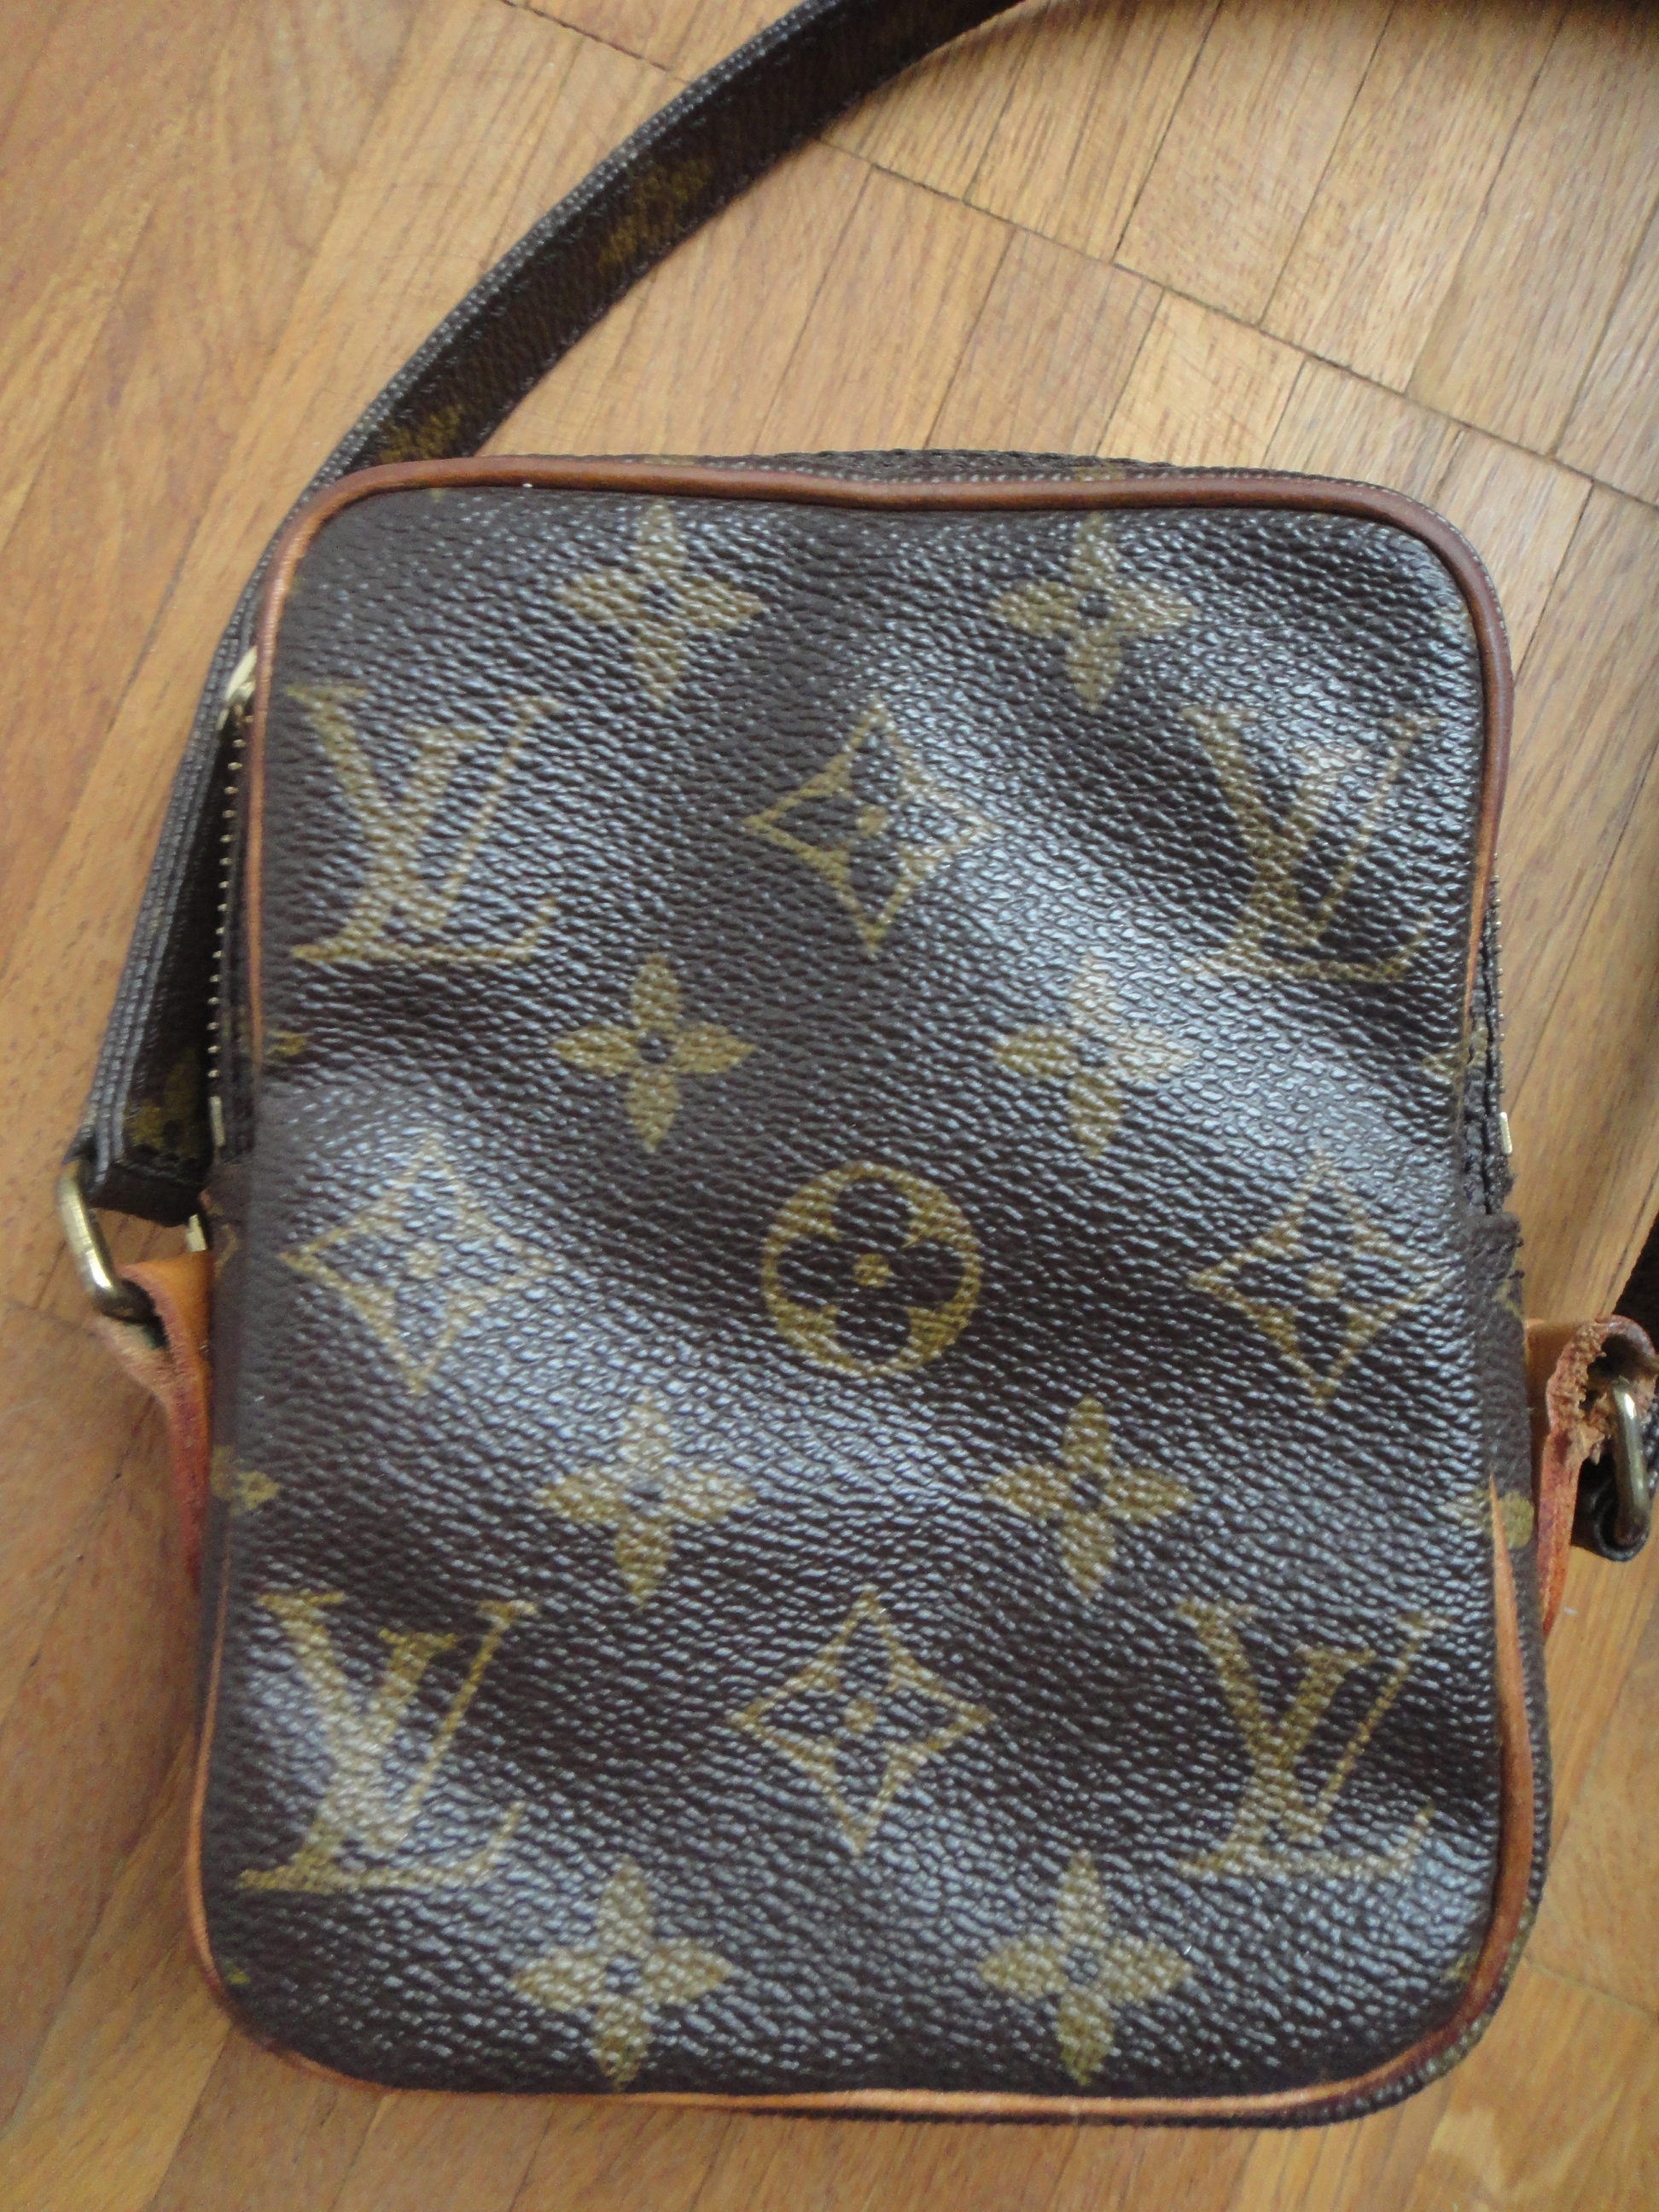 68aa8fa334f8 My little Louis Vuitton Museum   Mein kleines LV Museum ...